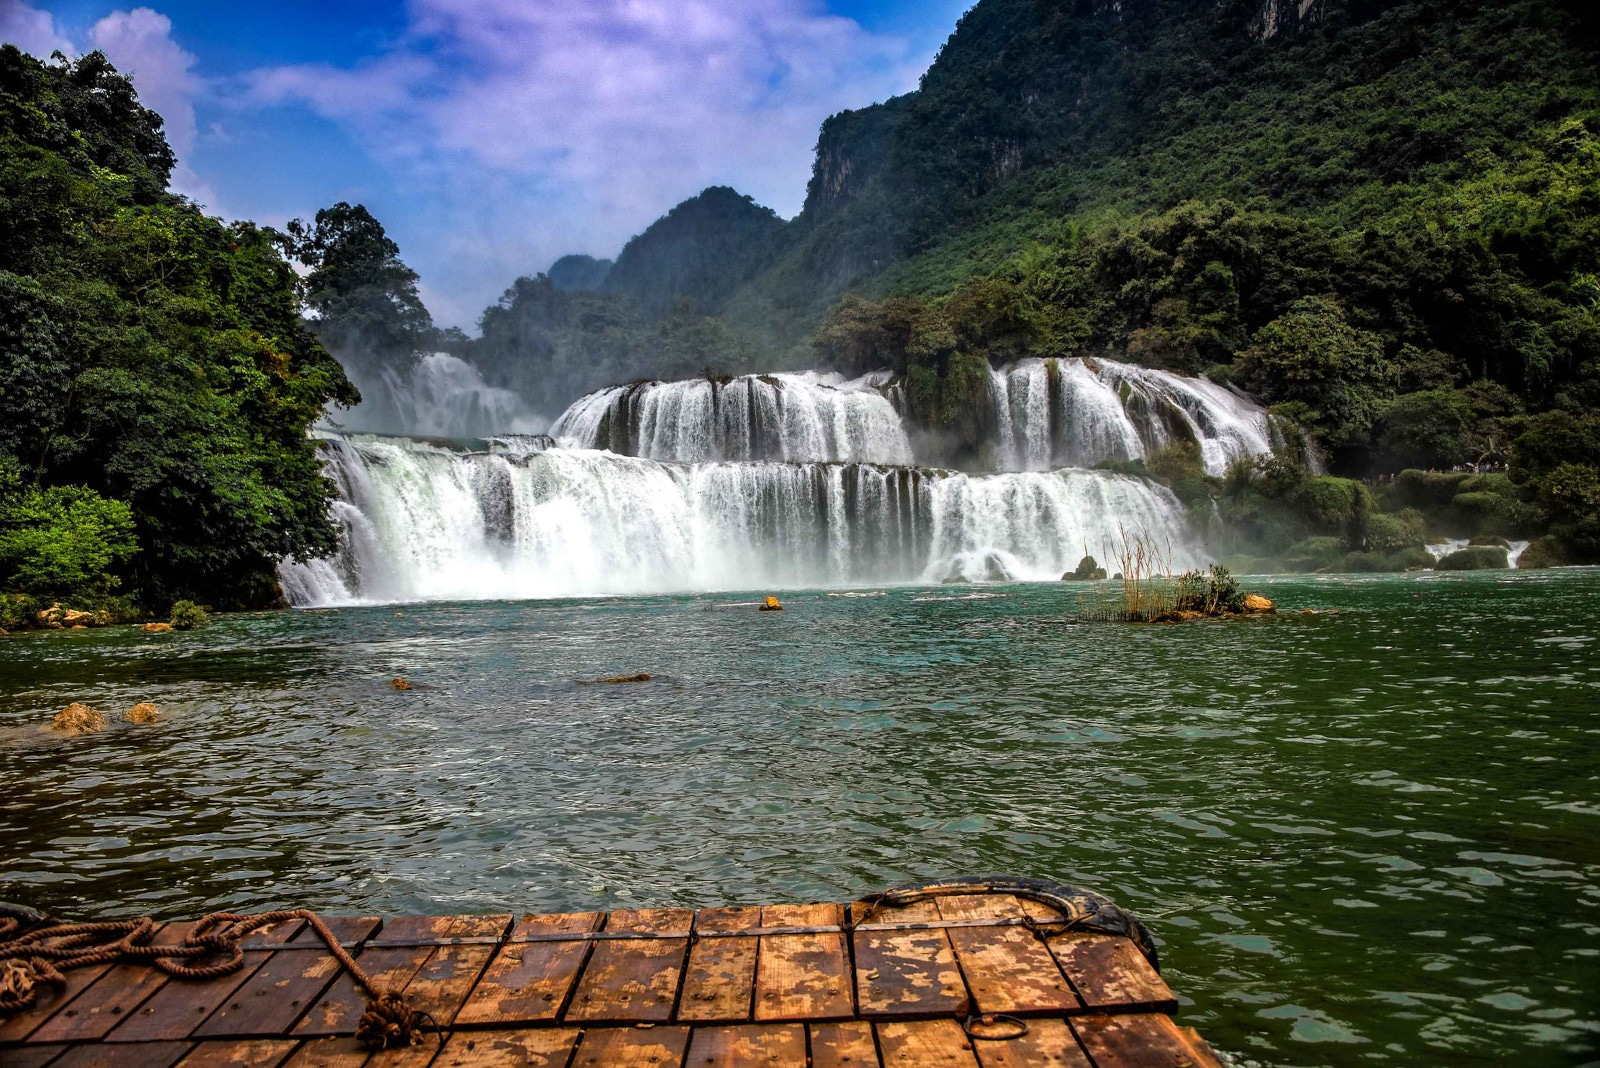 Image of the Ban Gioc Waterfall in Cao Bang Province, Vietnam